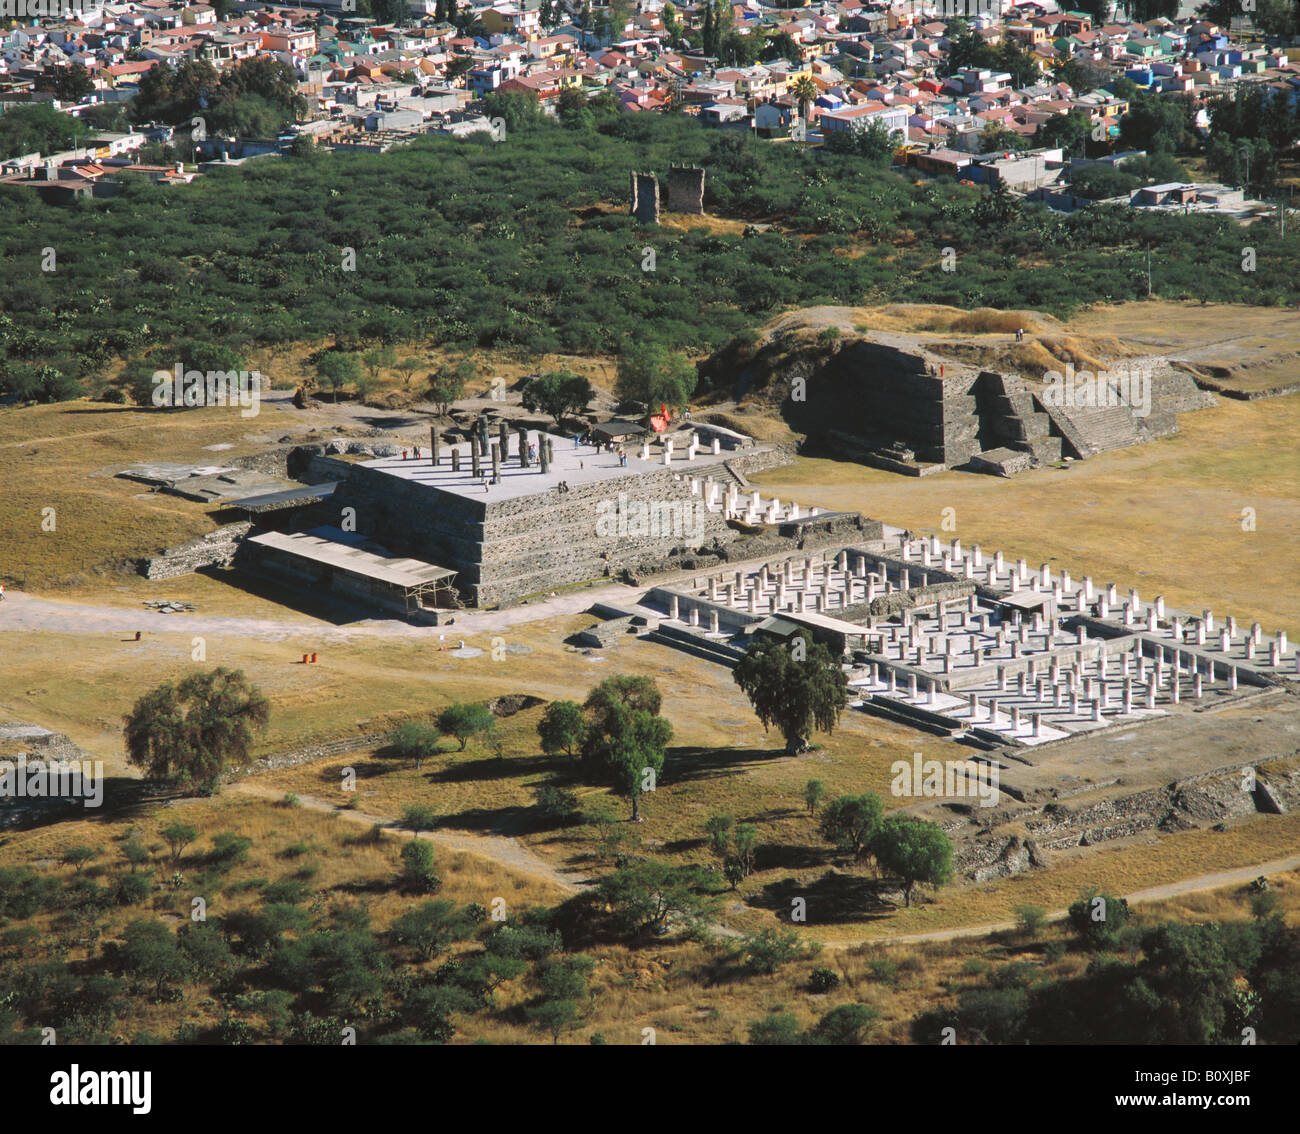 aerial above Gigantes de Tula Mexico Giants of Tula archeological site - Stock Image